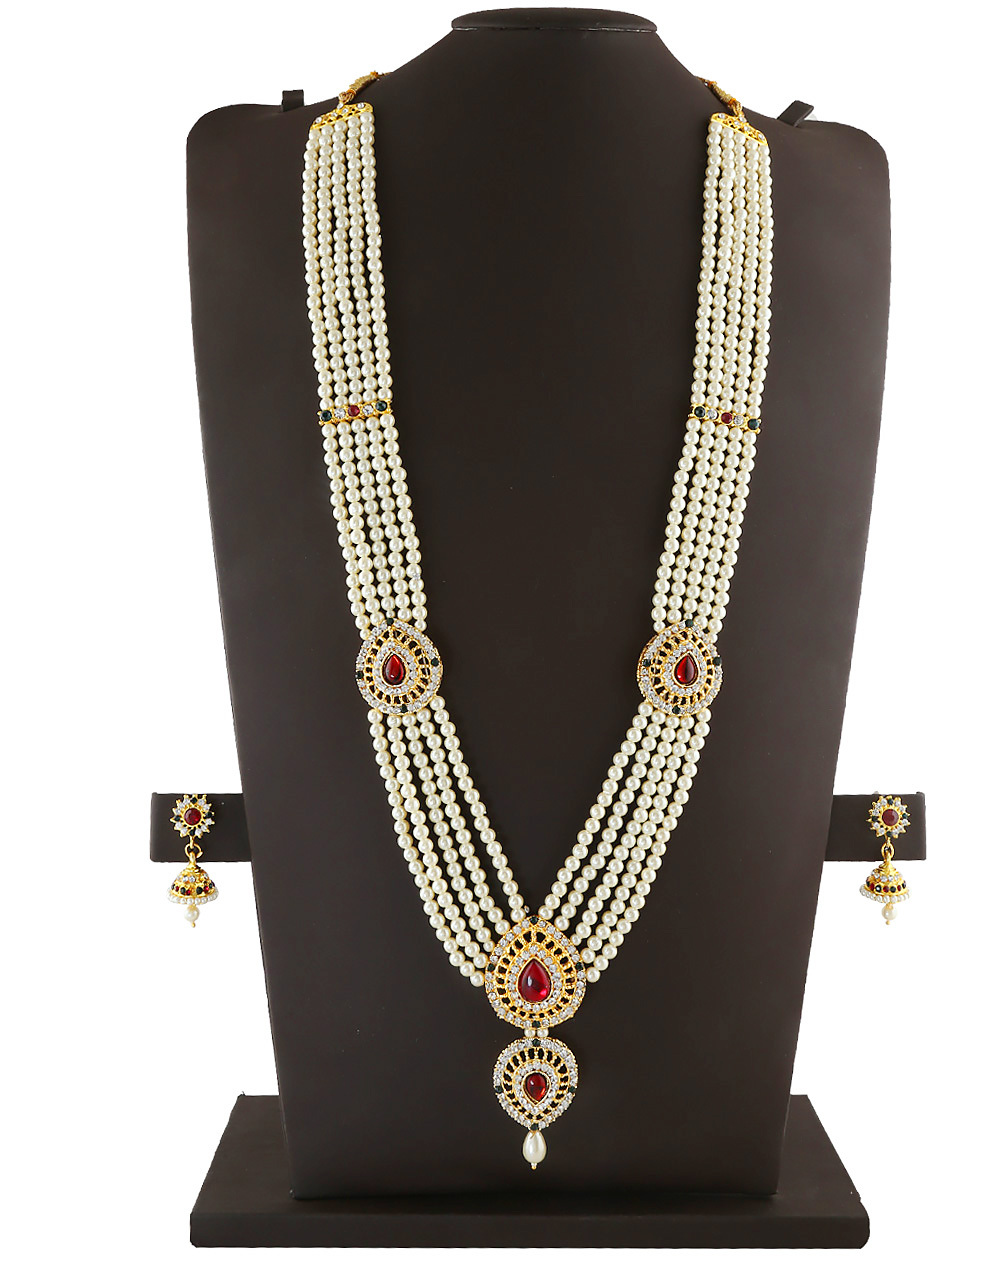 Temple Moti Haar Necklace For Mahalakshmi Sajavat Combo Set.